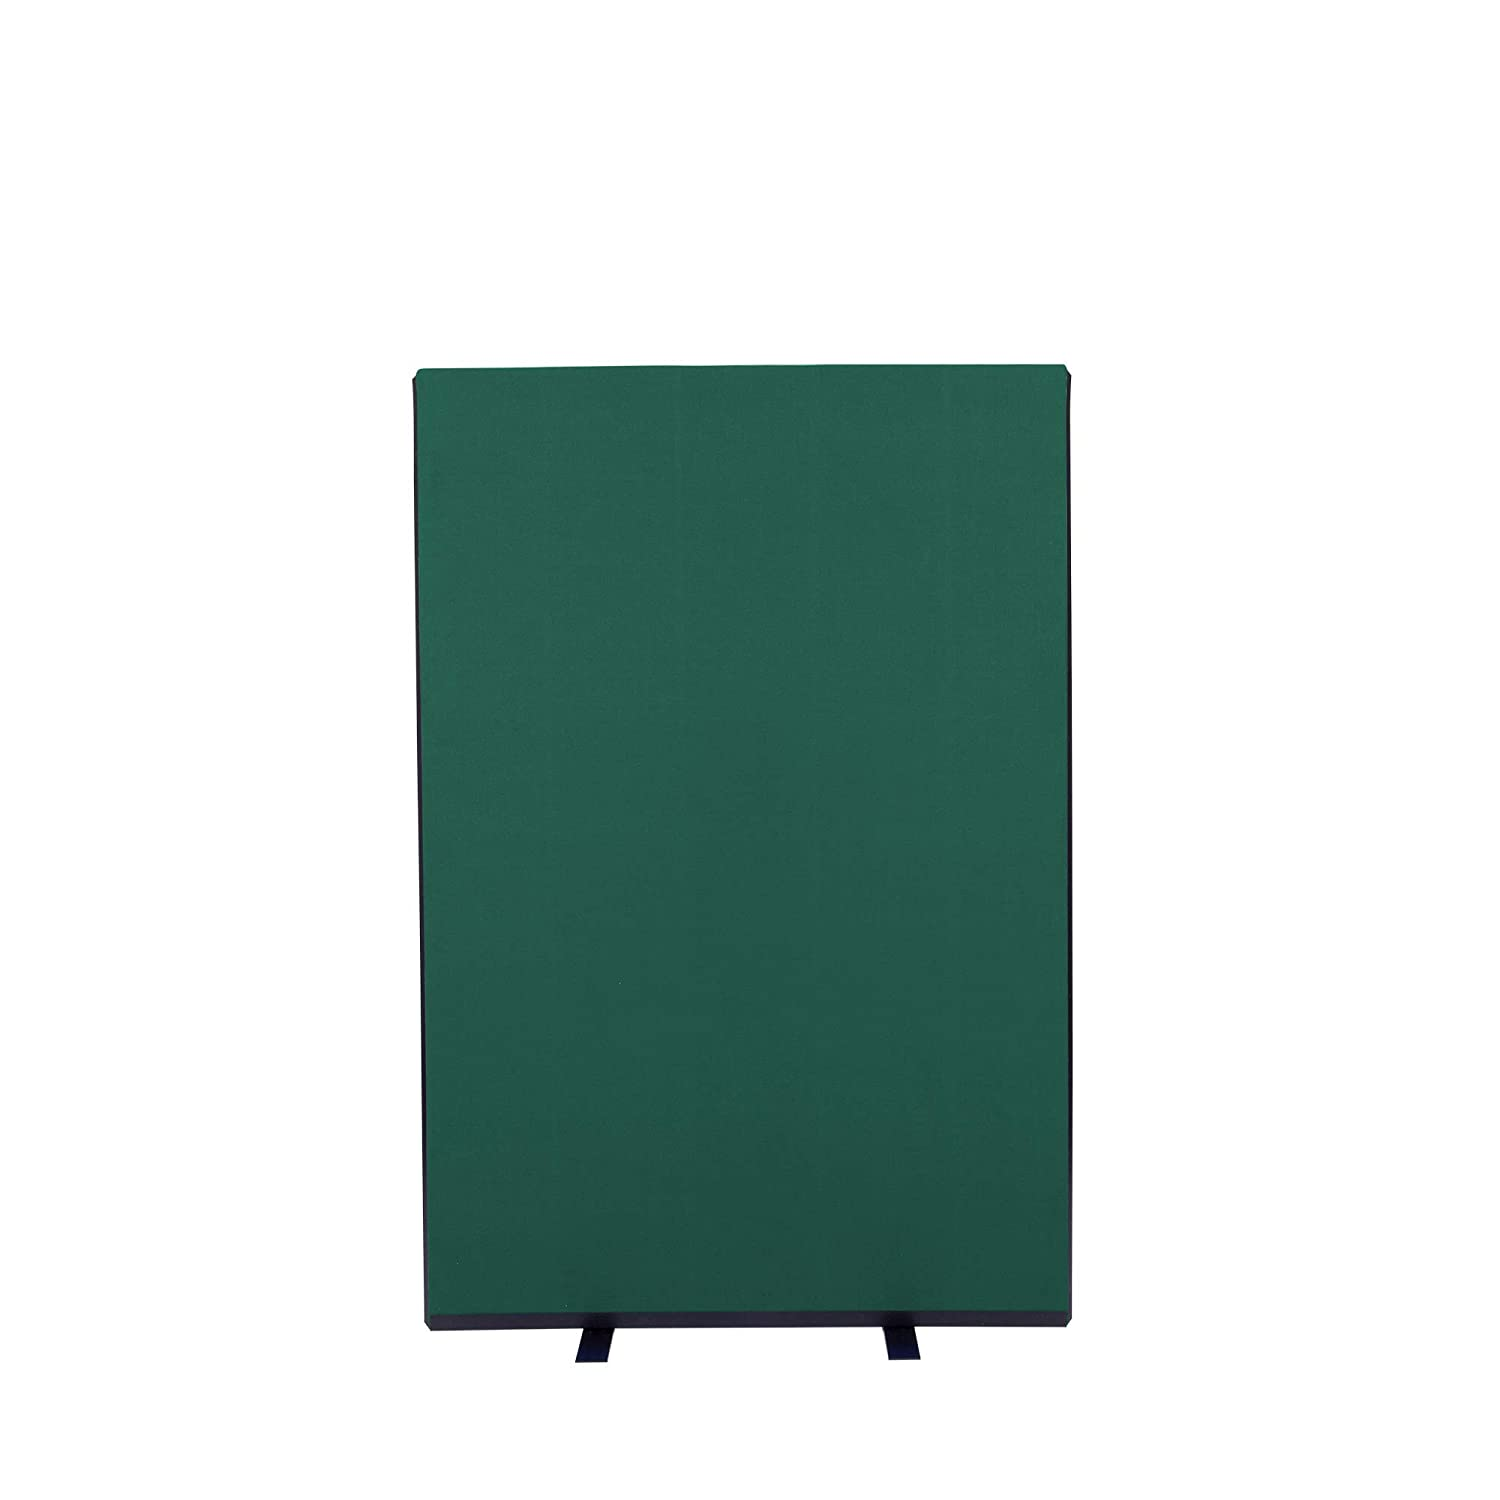 Bottle Green 1000mm W x 1500mm H Panelwarehouse 1000mm W x 1500mm H Free Standing Office Partition Screens Room Divider Navy blueee Nyloop Fabric